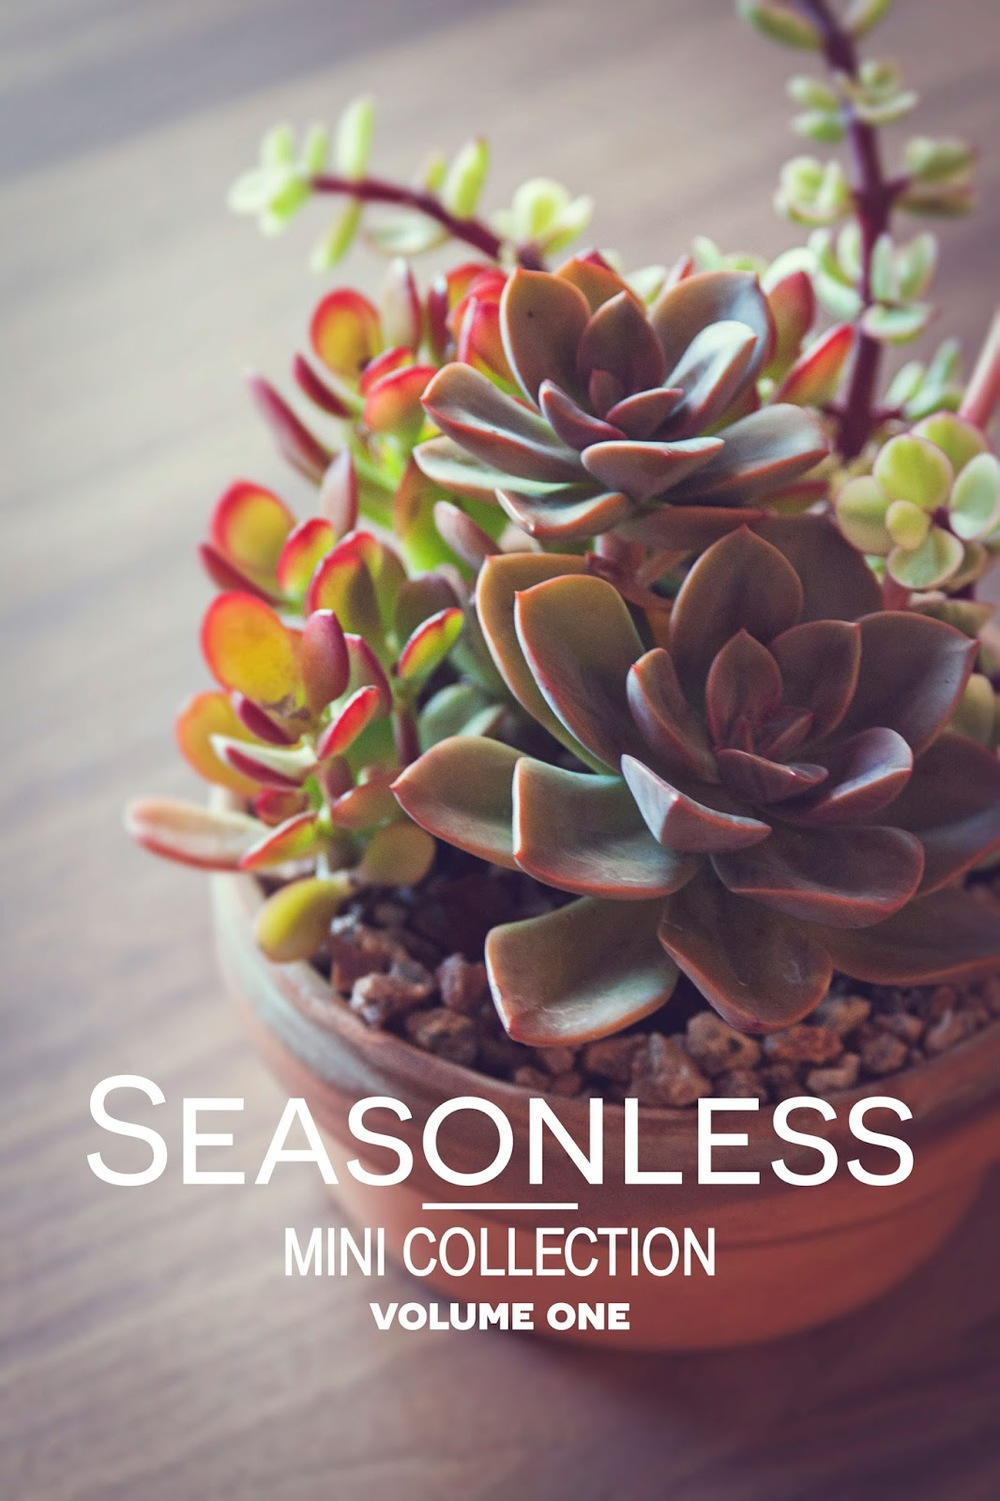 SEASONLESS | Mini Collection Volume One by Shannon Cook and Jane Richmond #seasonlessknits